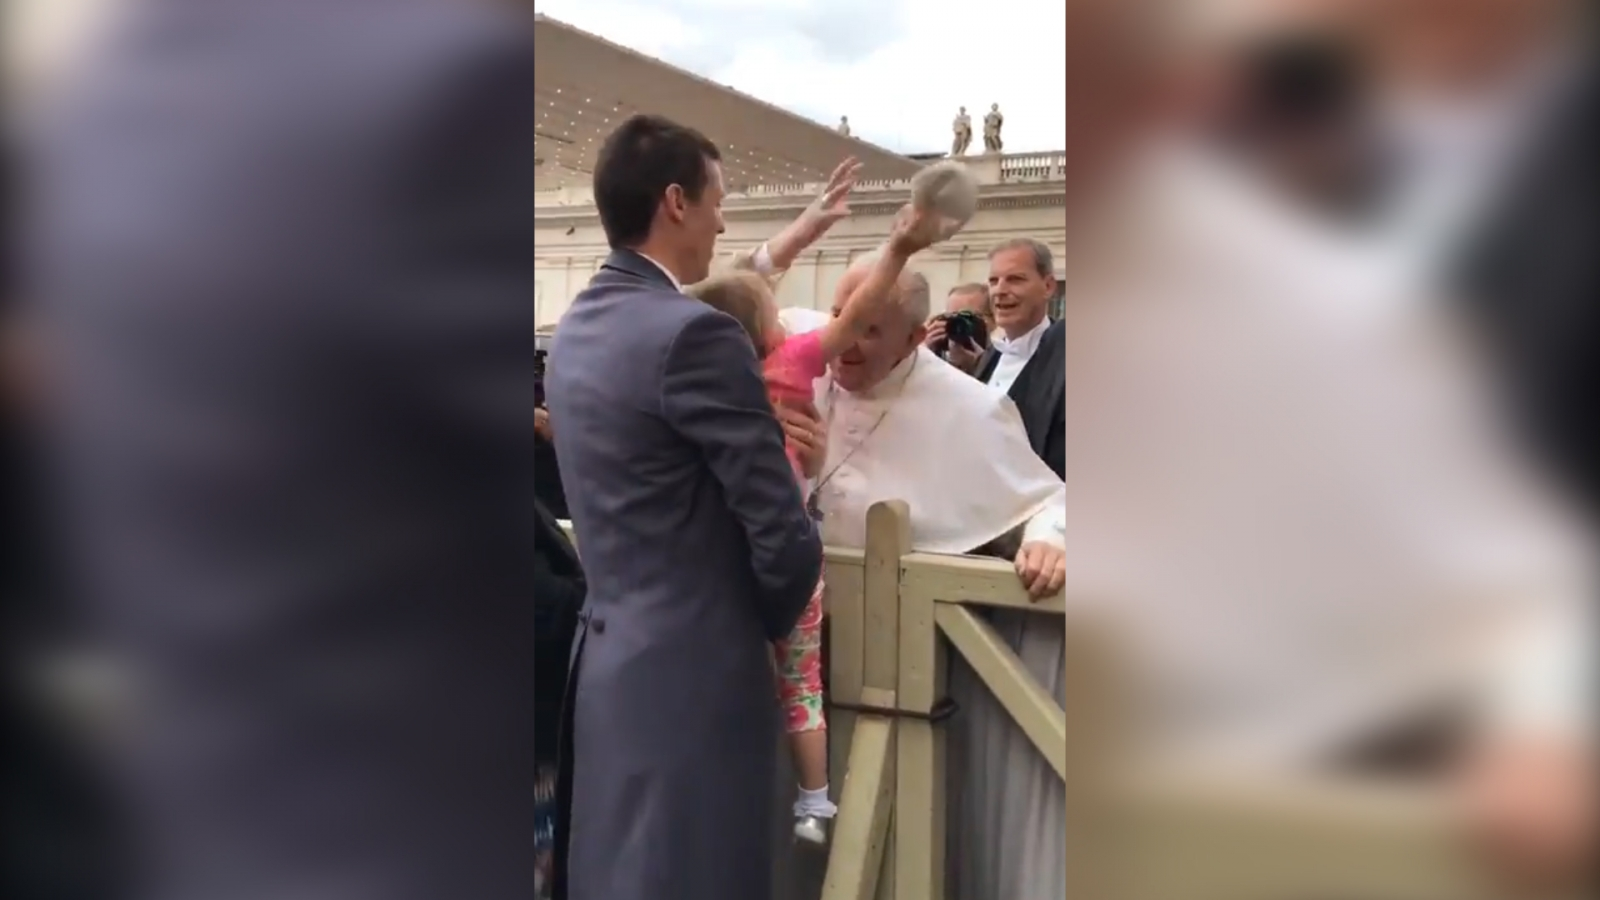 Little girl steals pope's hat